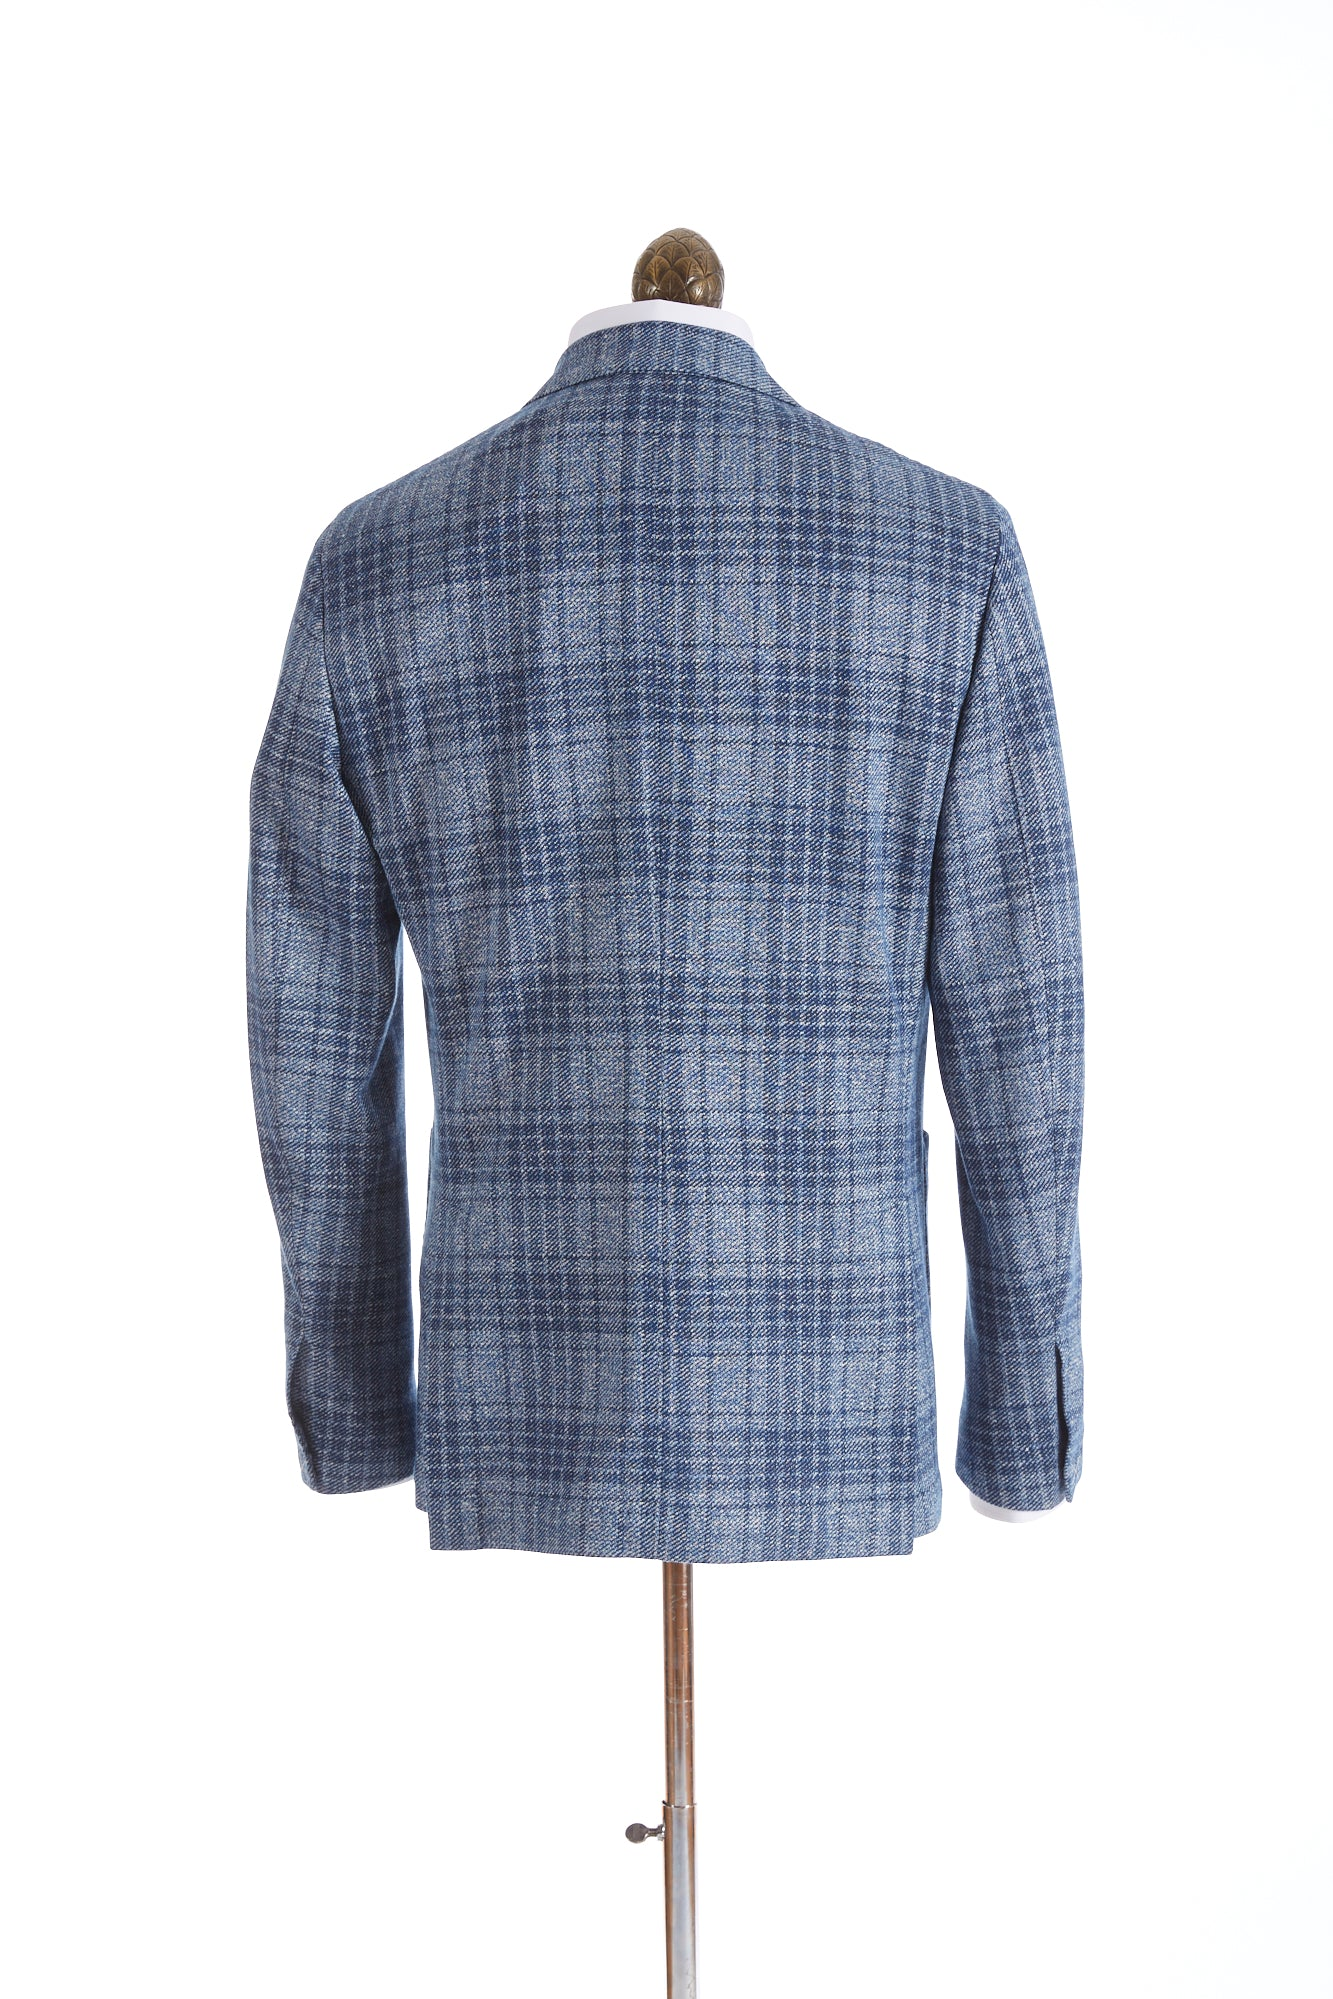 Canali Light Blue Glen Check Sport Jacket Back